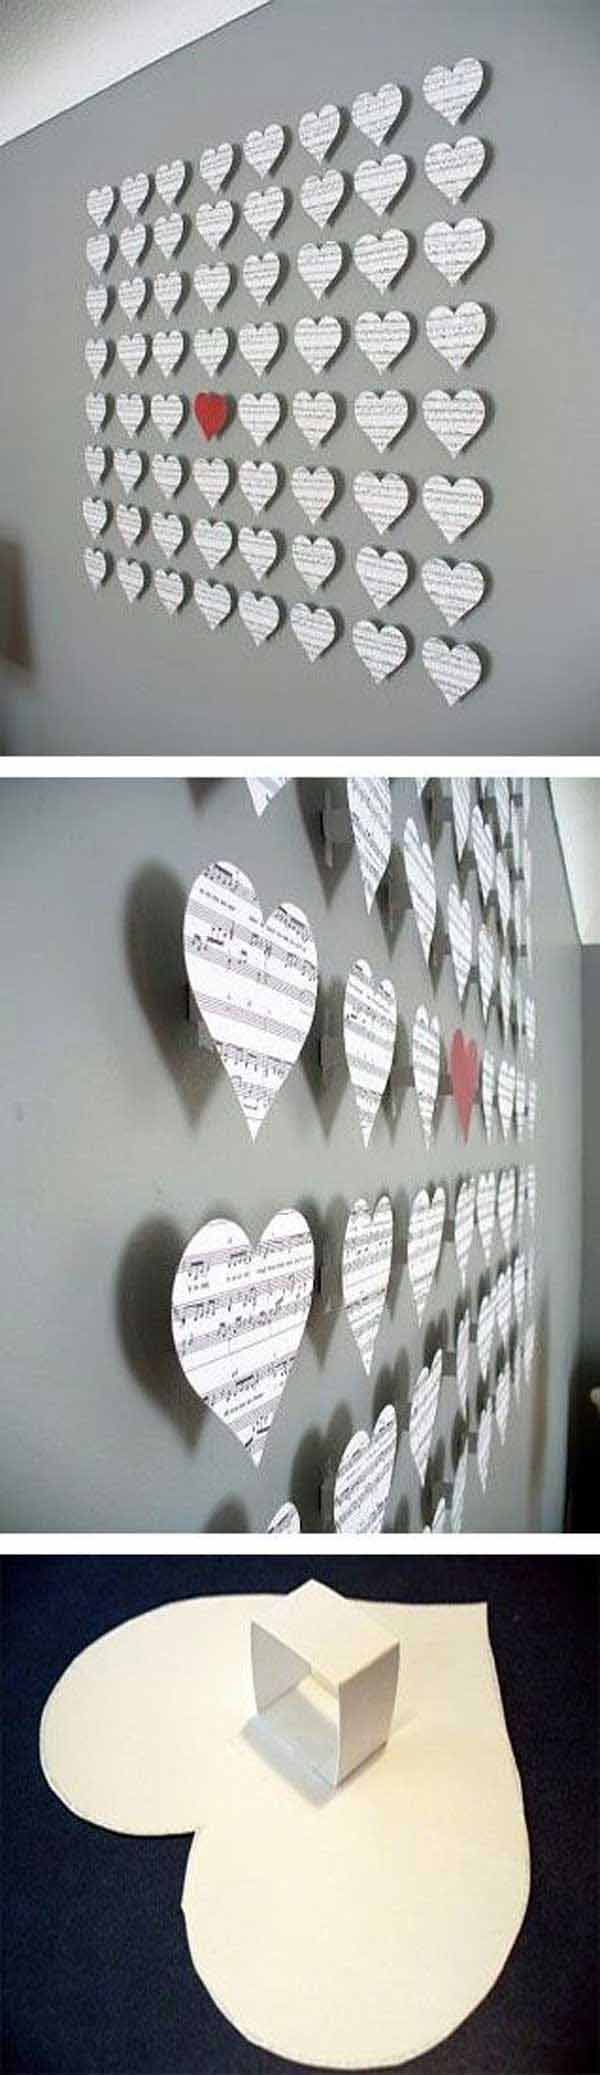 Best 20 Diy wall ideas on Pinterest Cheap bedroom ideas Cheap